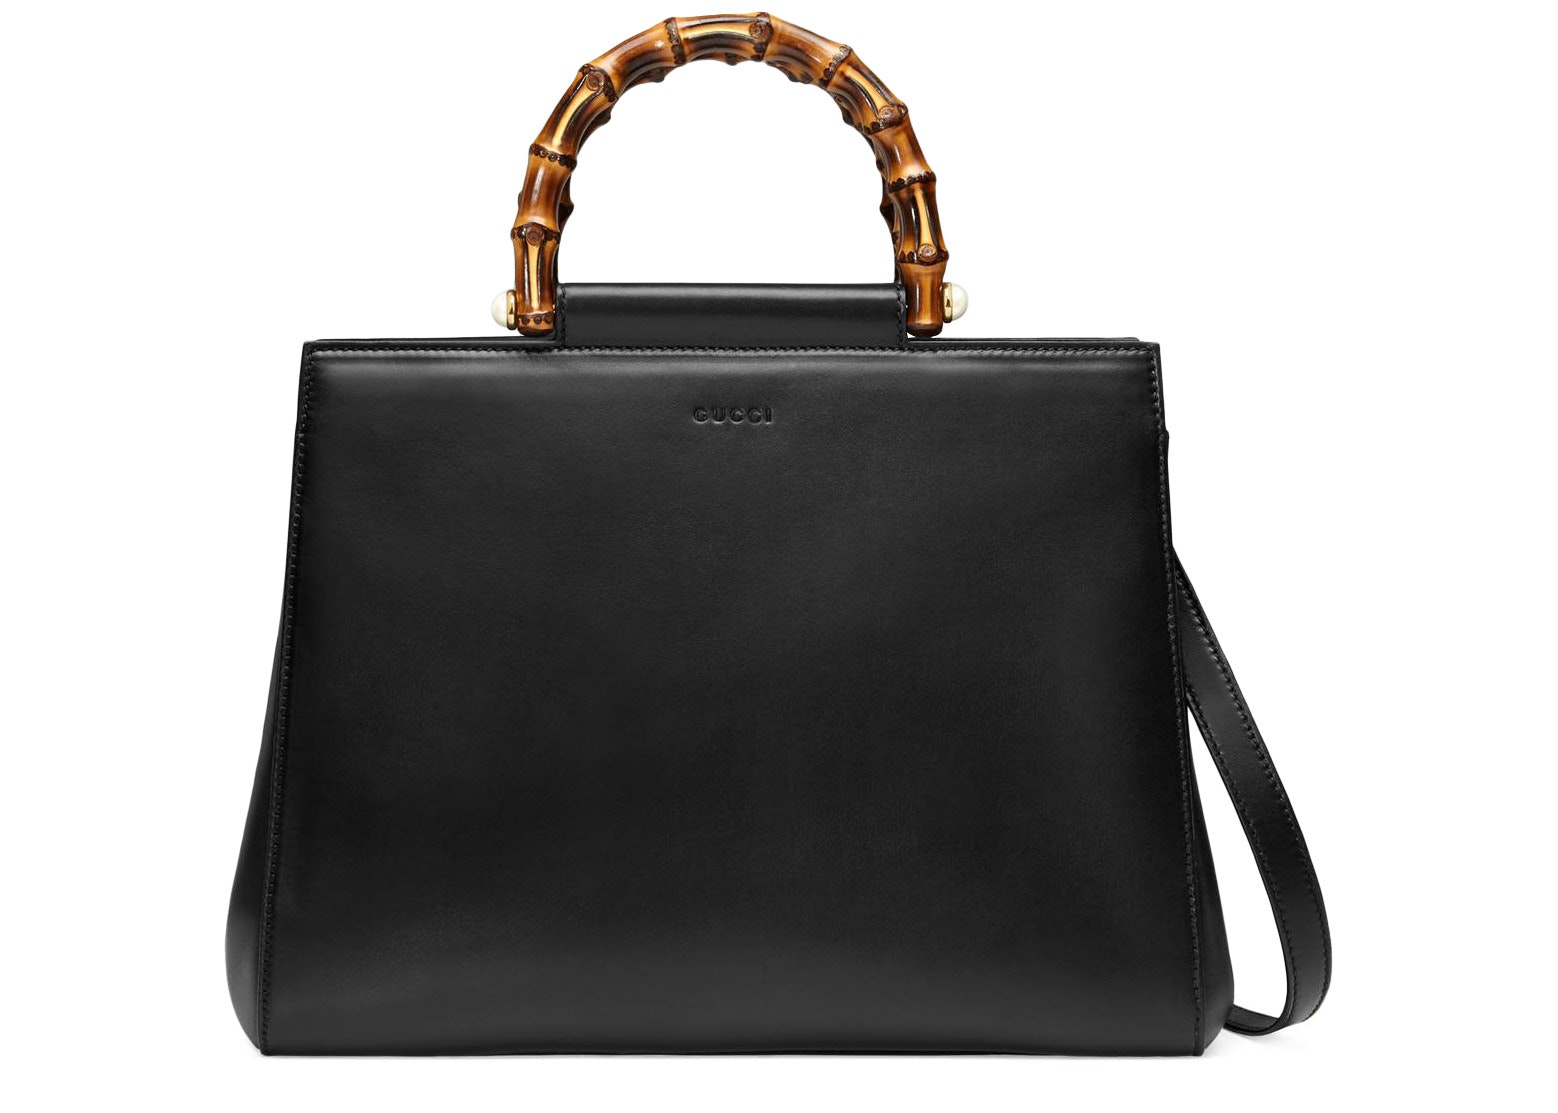 Gucci Bamboo Nymphaea Top Handle Medium Black